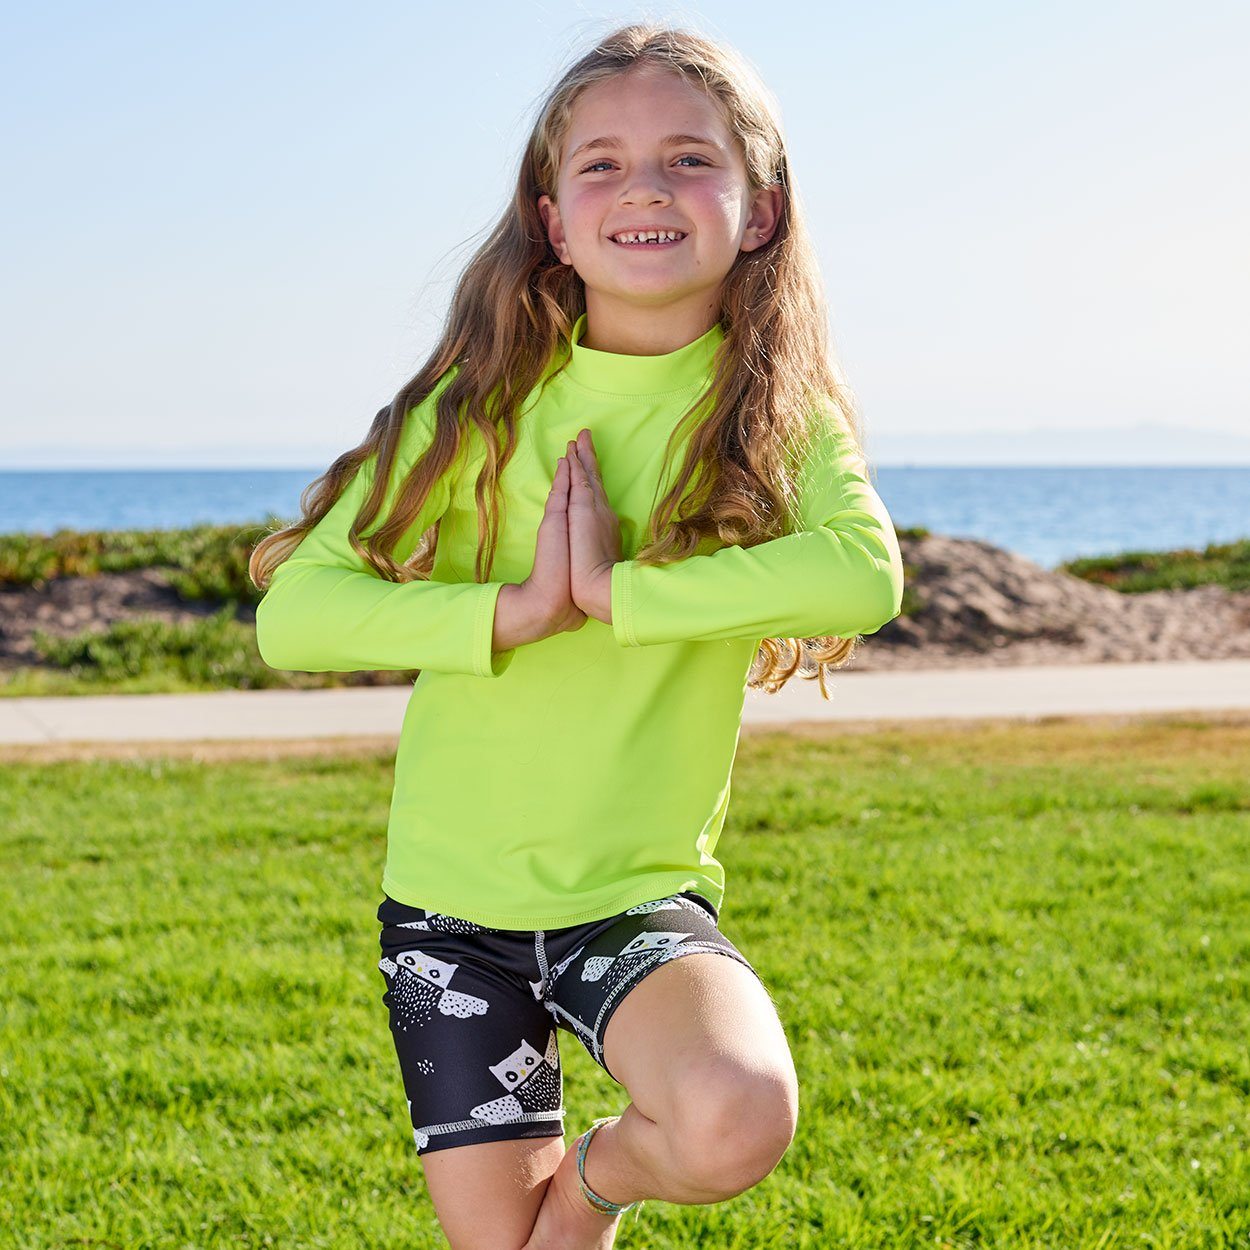 Yellow Kids Long Sleeve Rash Guard Top Upf50 Boys Girls Unisex Size 2 12 Girl Doing Yoga by the Beach Sunpoplife